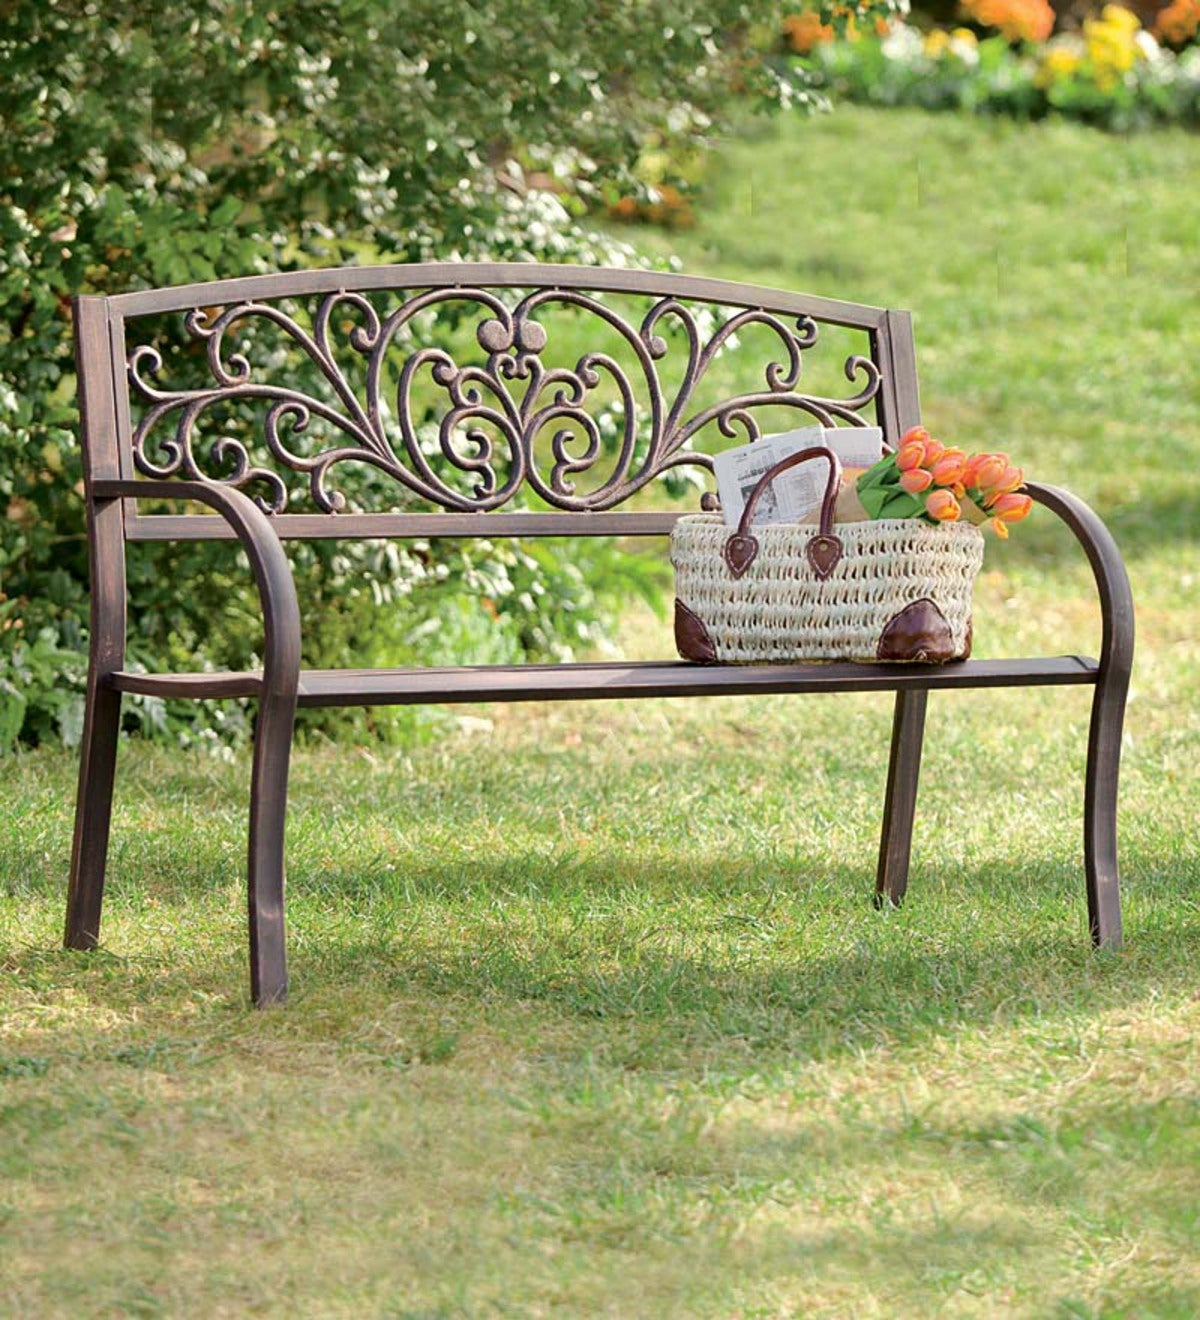 Blooming Garden Metal Bench Regarding Blooming Iron Garden Benches (View 1 of 25)